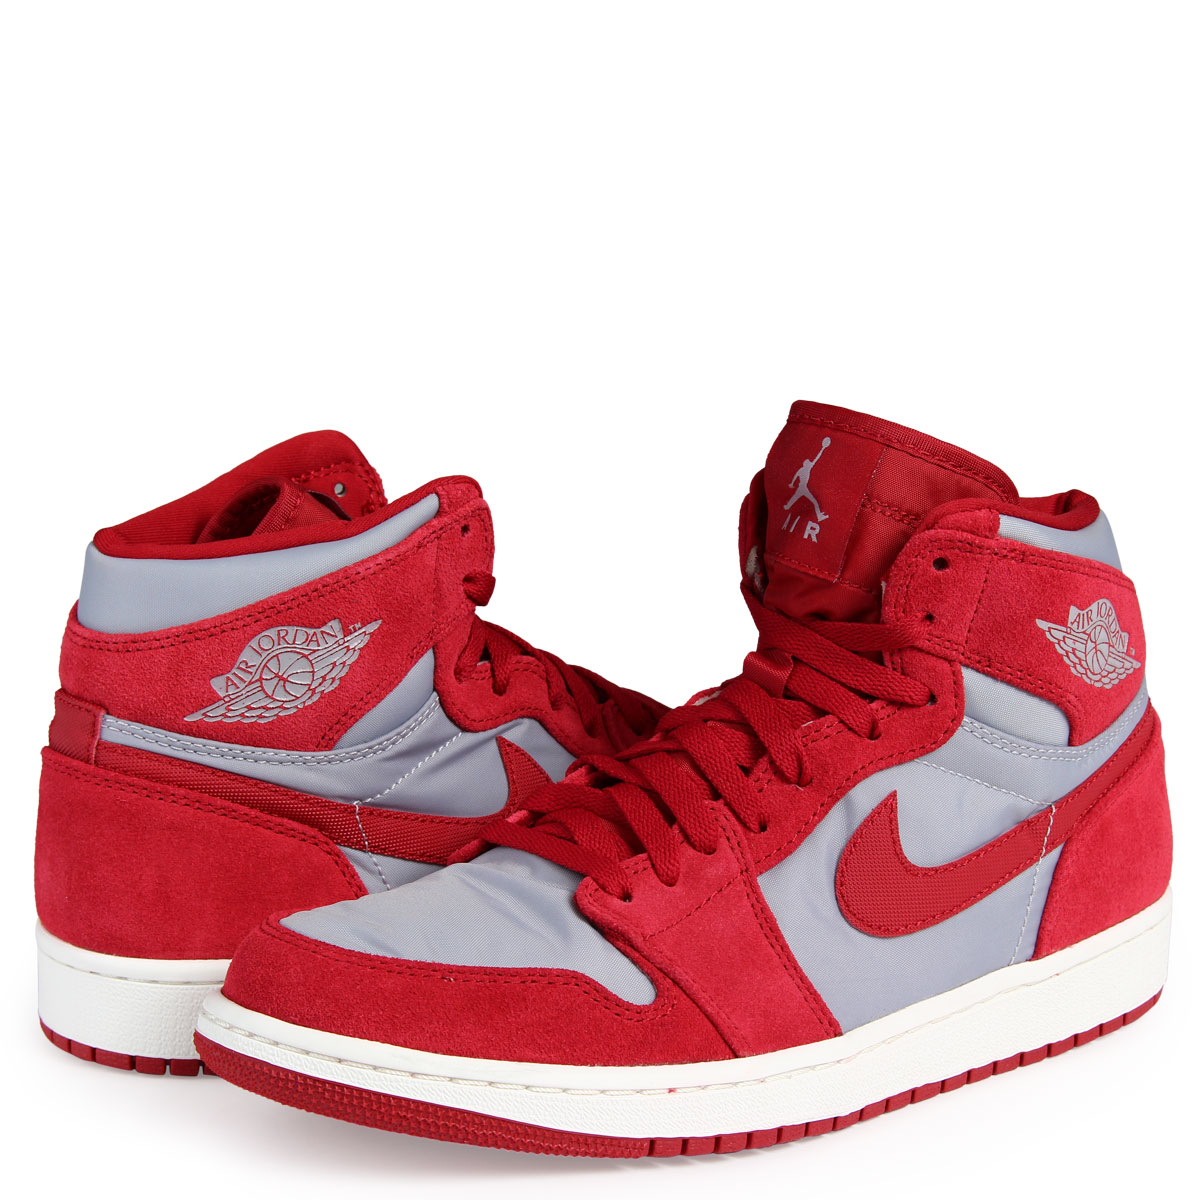 a17f1c63c28 ALLSPORTS: NIKE AIR JORDAN 1 RETRO HIGH PREMIUM Nike Air Jordan 1 nostalgic  high sneakers AA3993-601 men shoes red [10/16 Shinnyu load] [1710] |  Rakuten ...